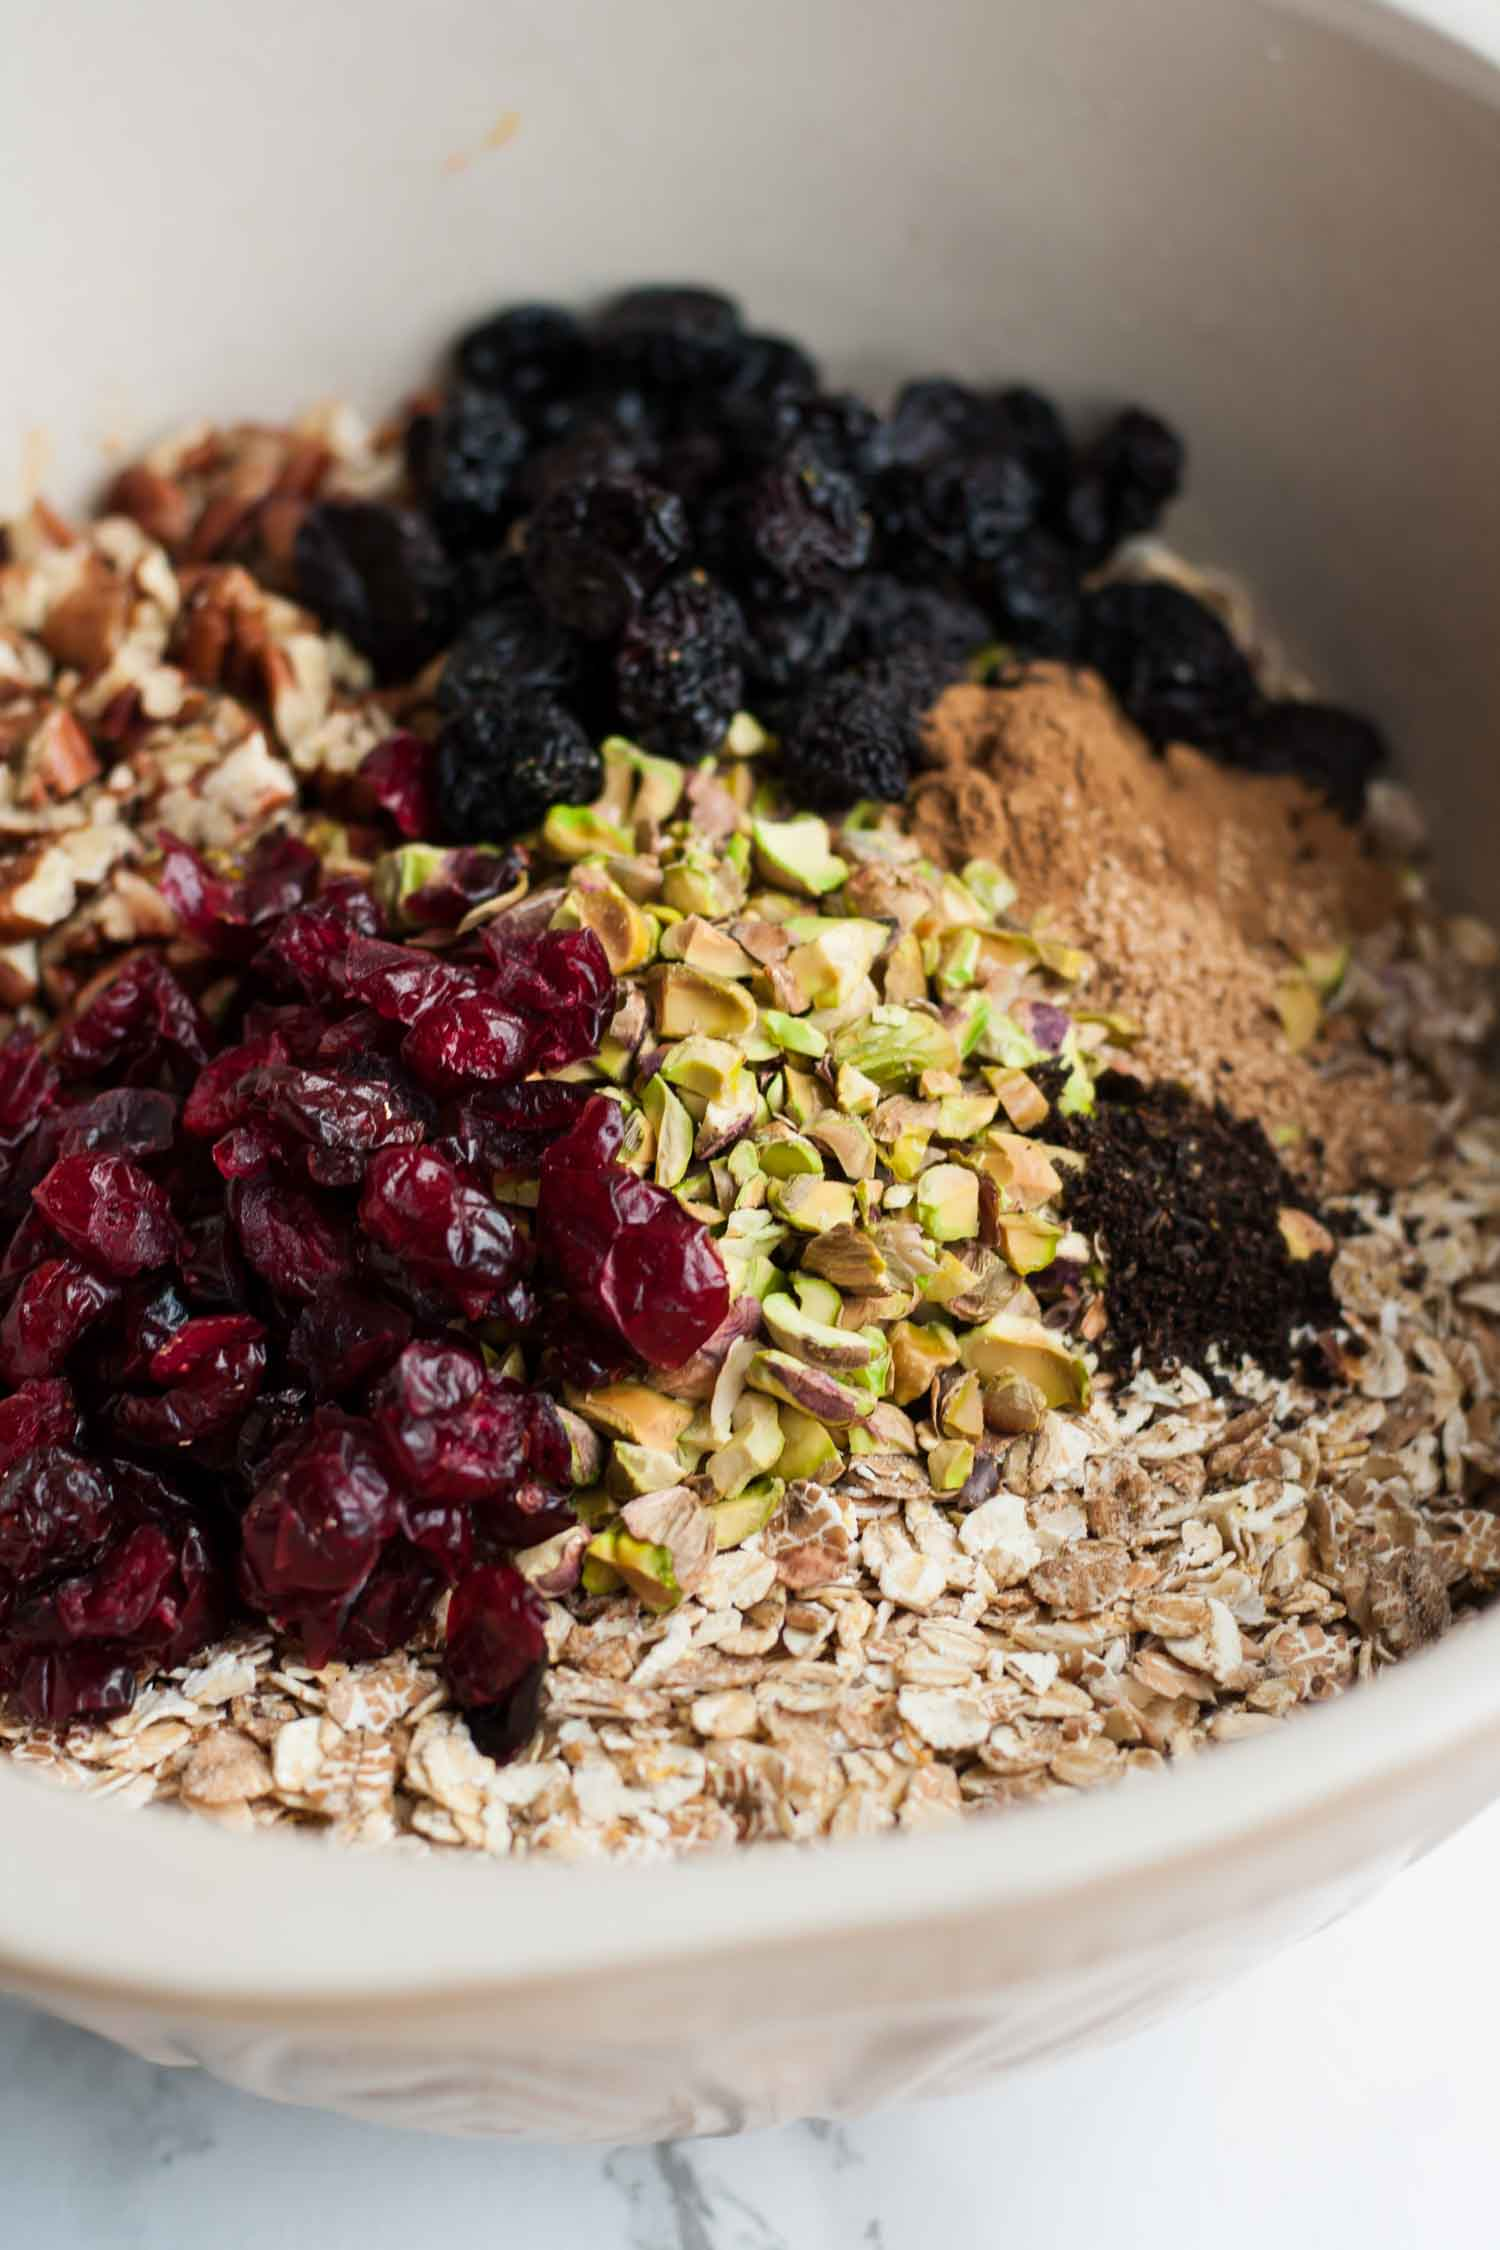 Christmas Muesli - this festive spiced muesli makes for a delicious breakfast and a lovely edible gift!   eatloveeats.com